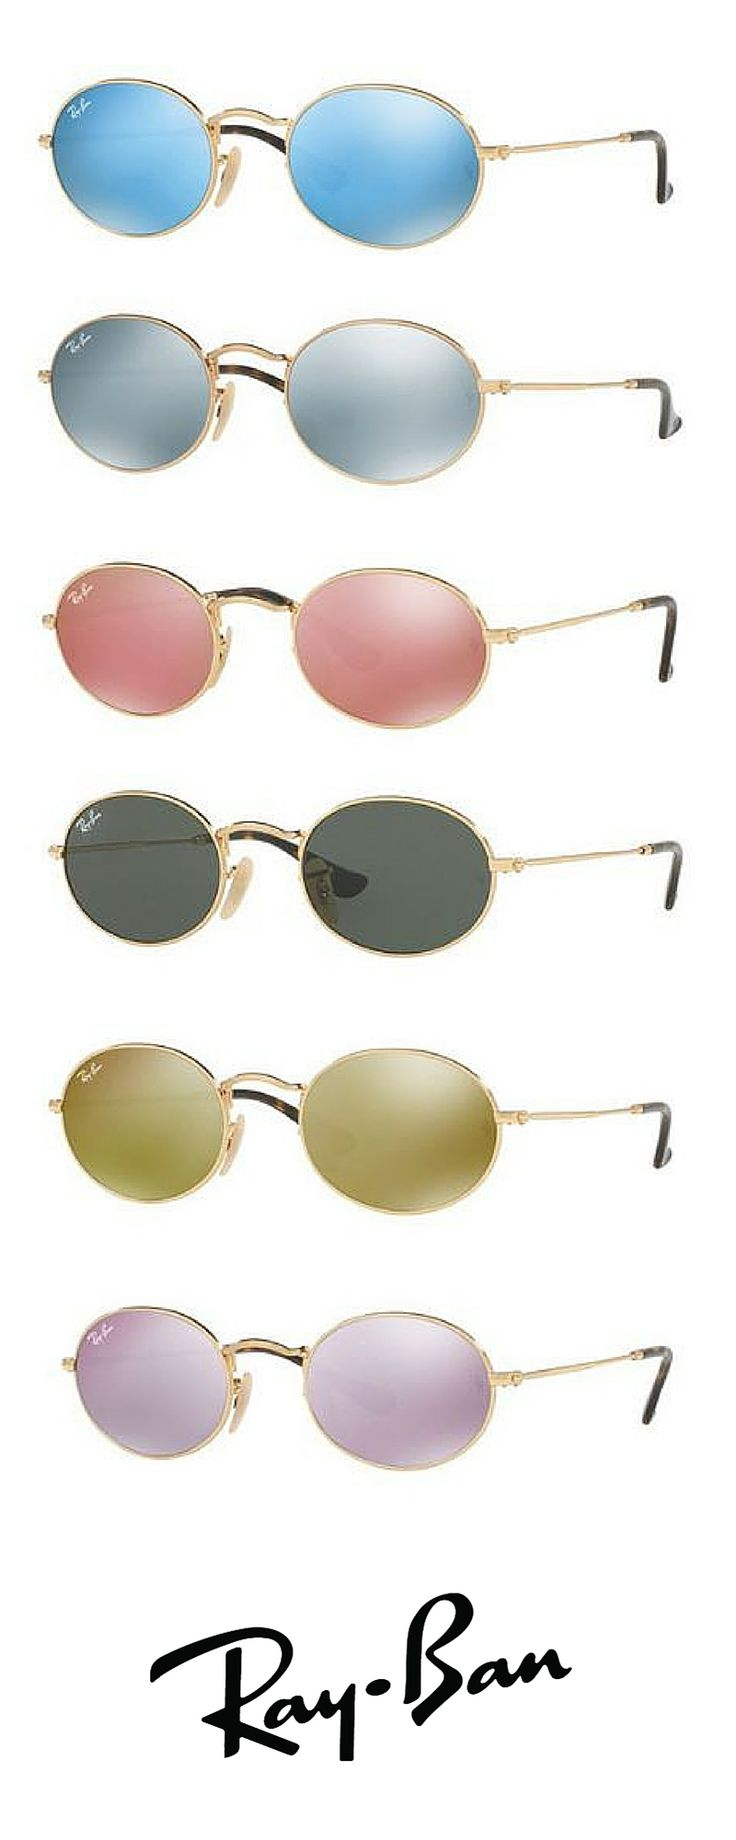 Bring some cool colors to your look with a pair of Oval Ray-Ban sunglasses